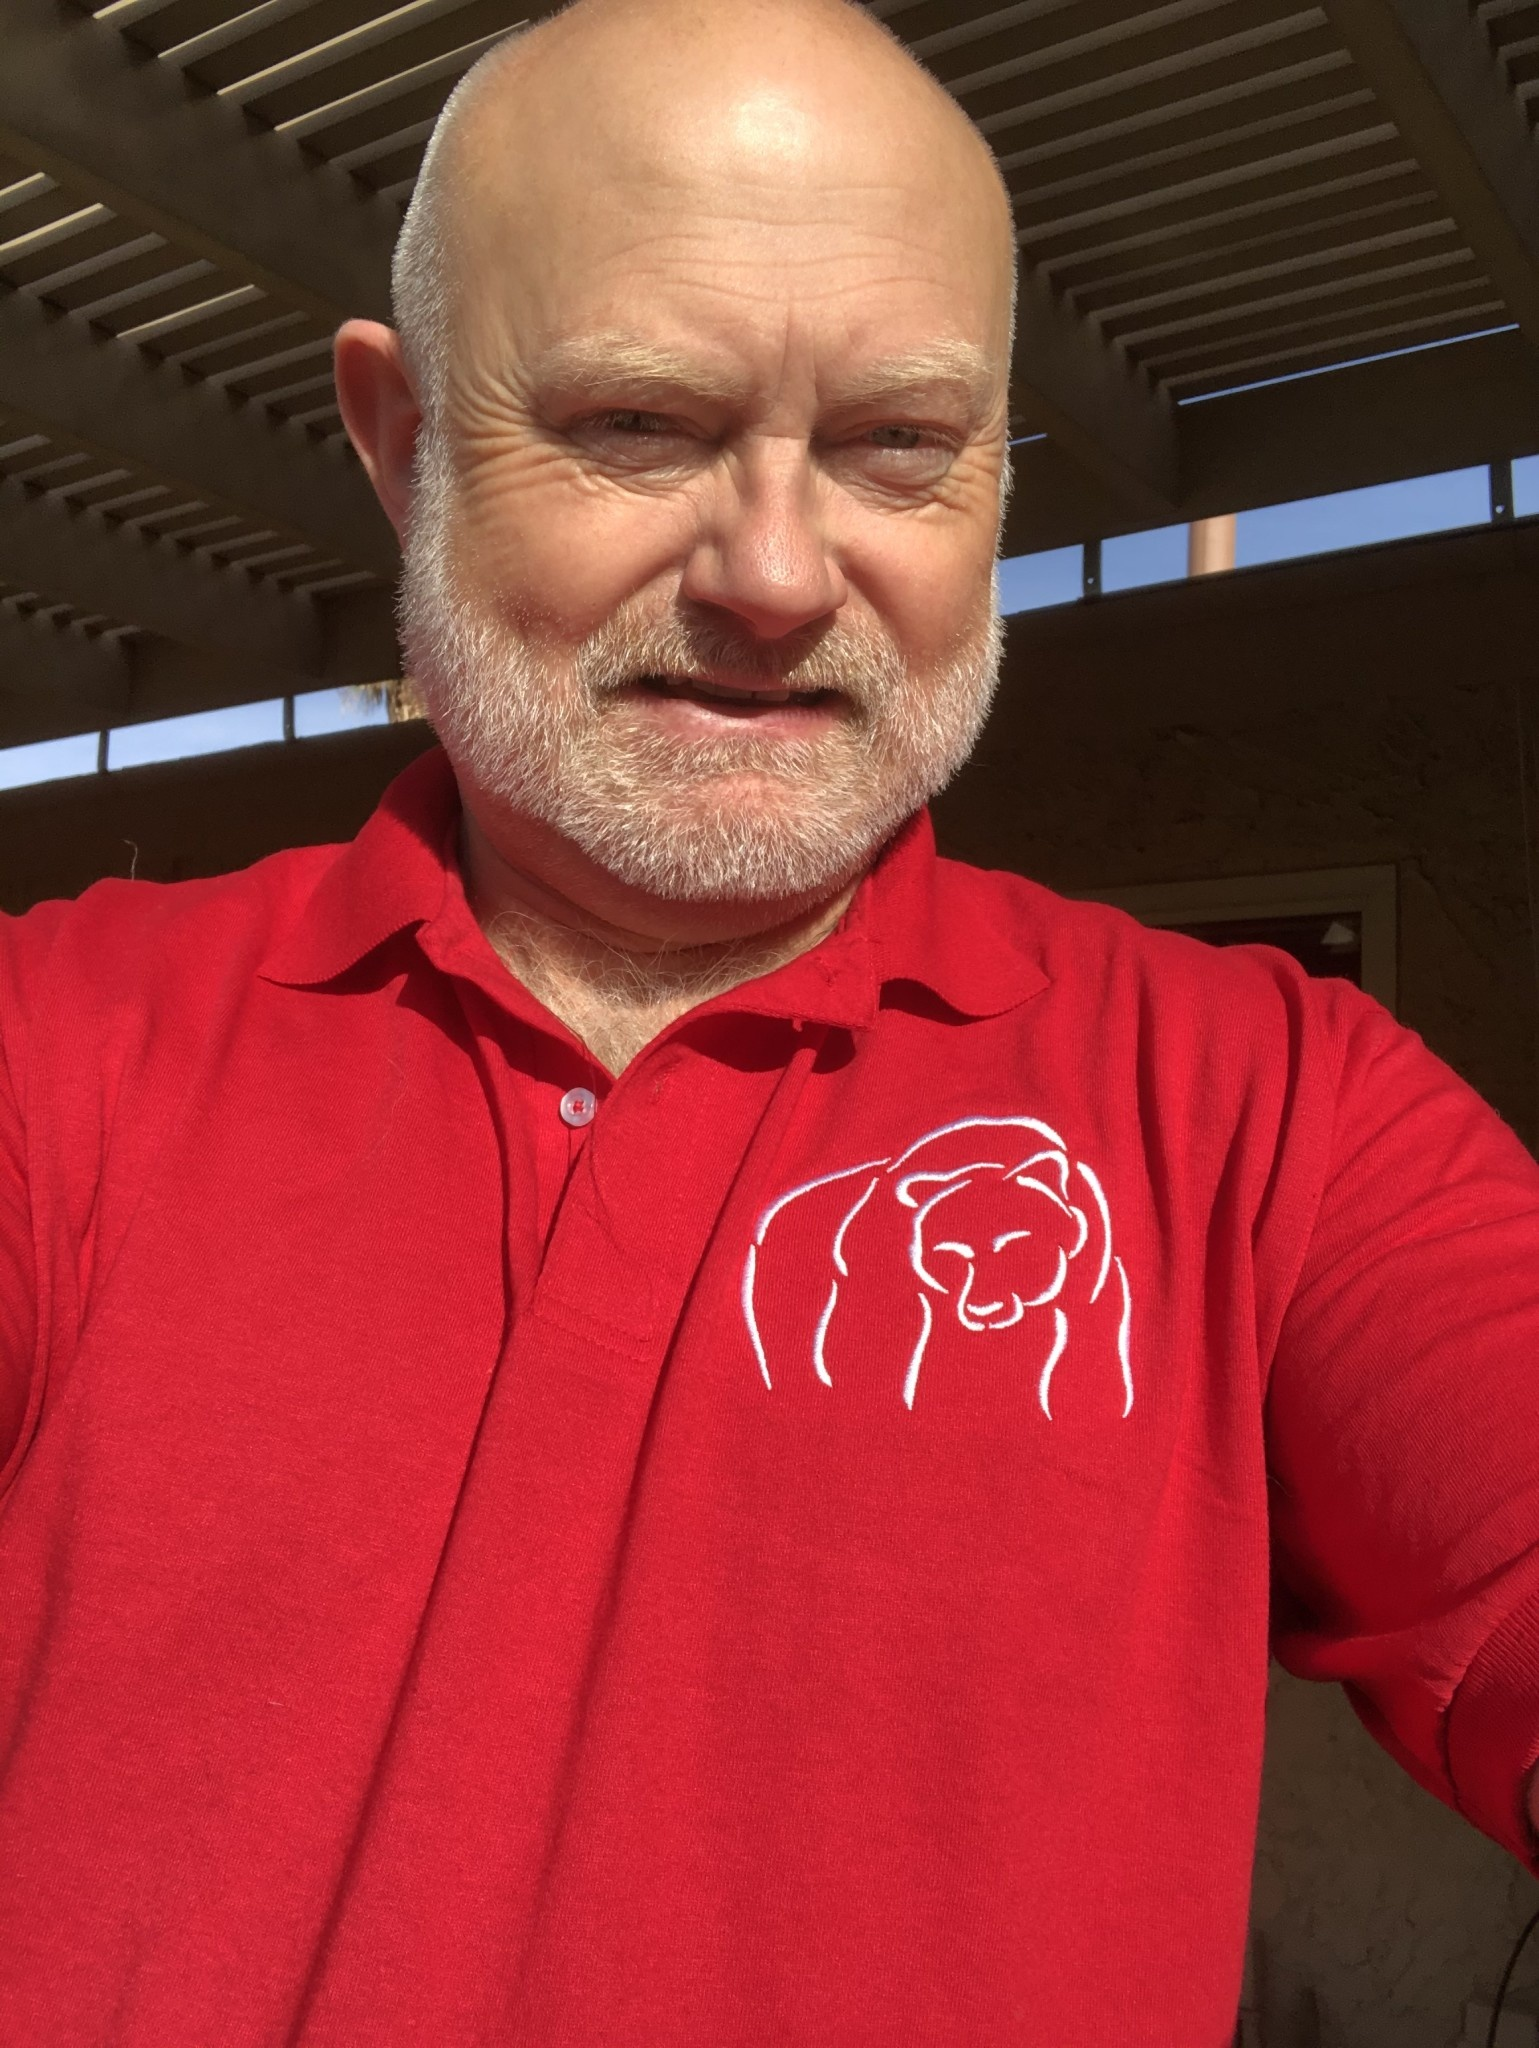 Holidays Bear Wear, Red with White Abstract Bear Design